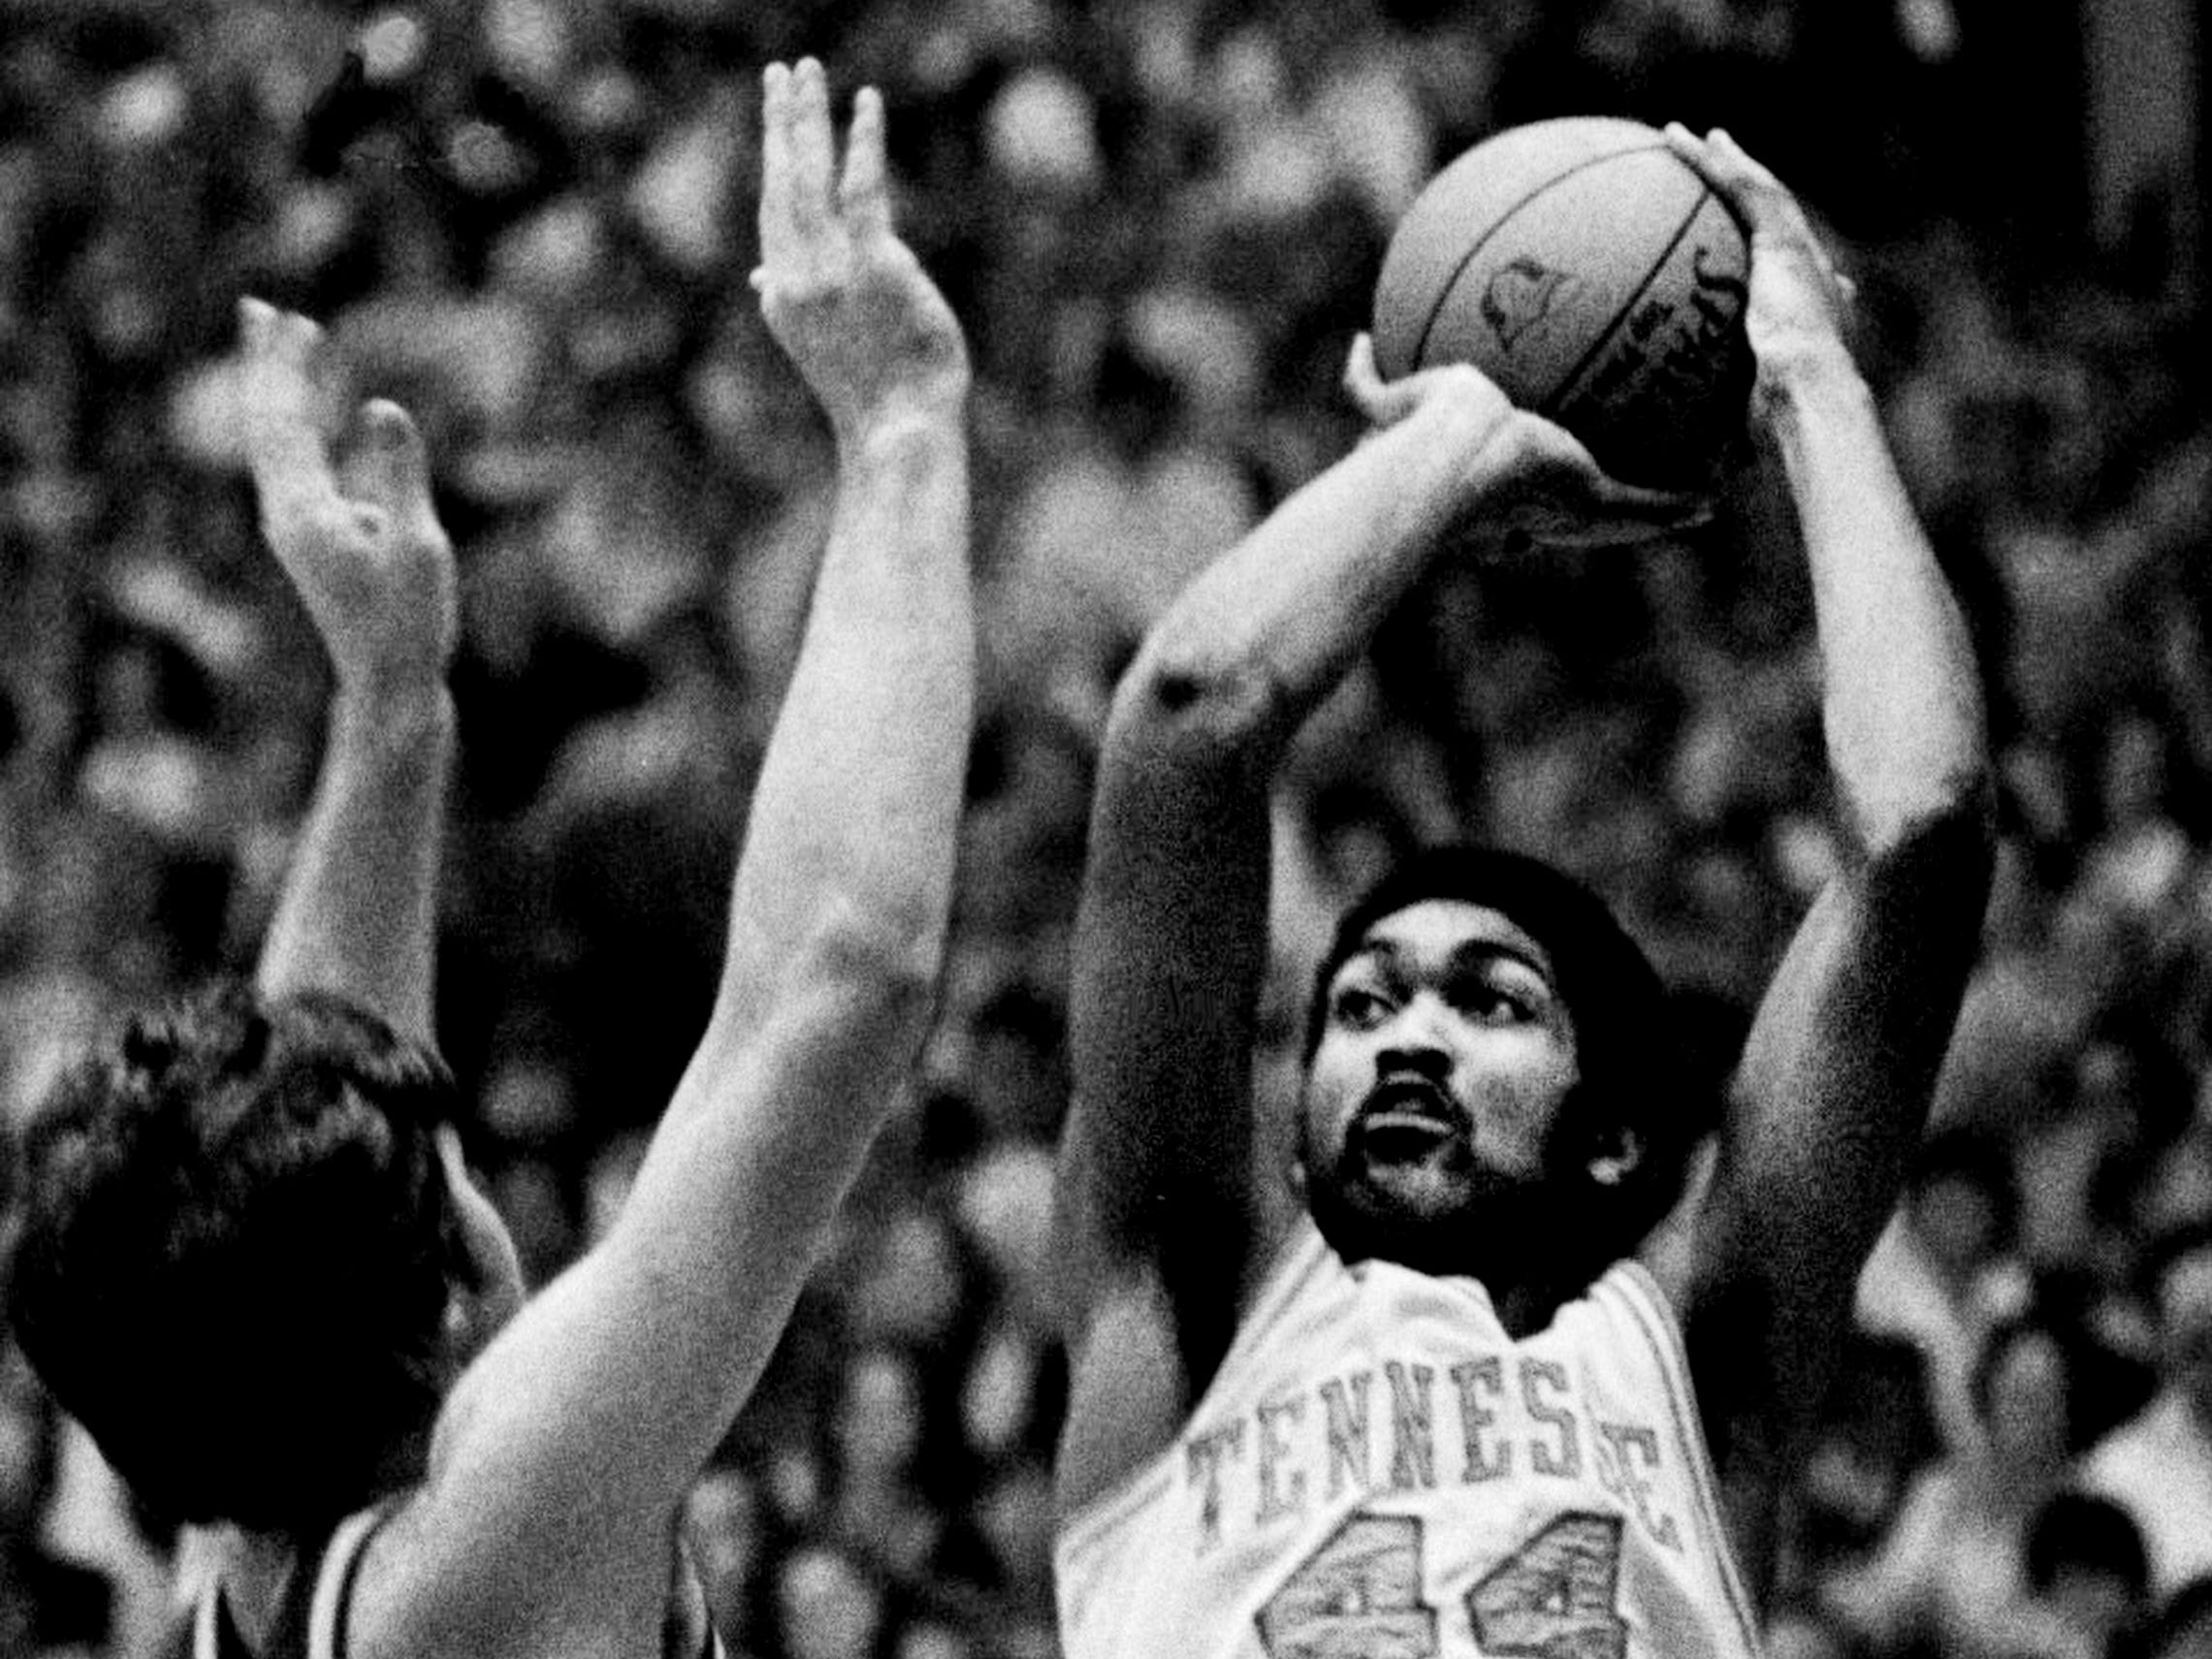 Tennessee sophomore Howard Wood (44) takes a shot against Notre Dame during the NCAA Mideast Regional tournament at MTSU's Murphy Center in Murfreesboro on March 11, 1979. Tennessee was knocked out the tournament with a 73-67 loss to Notre Dame.